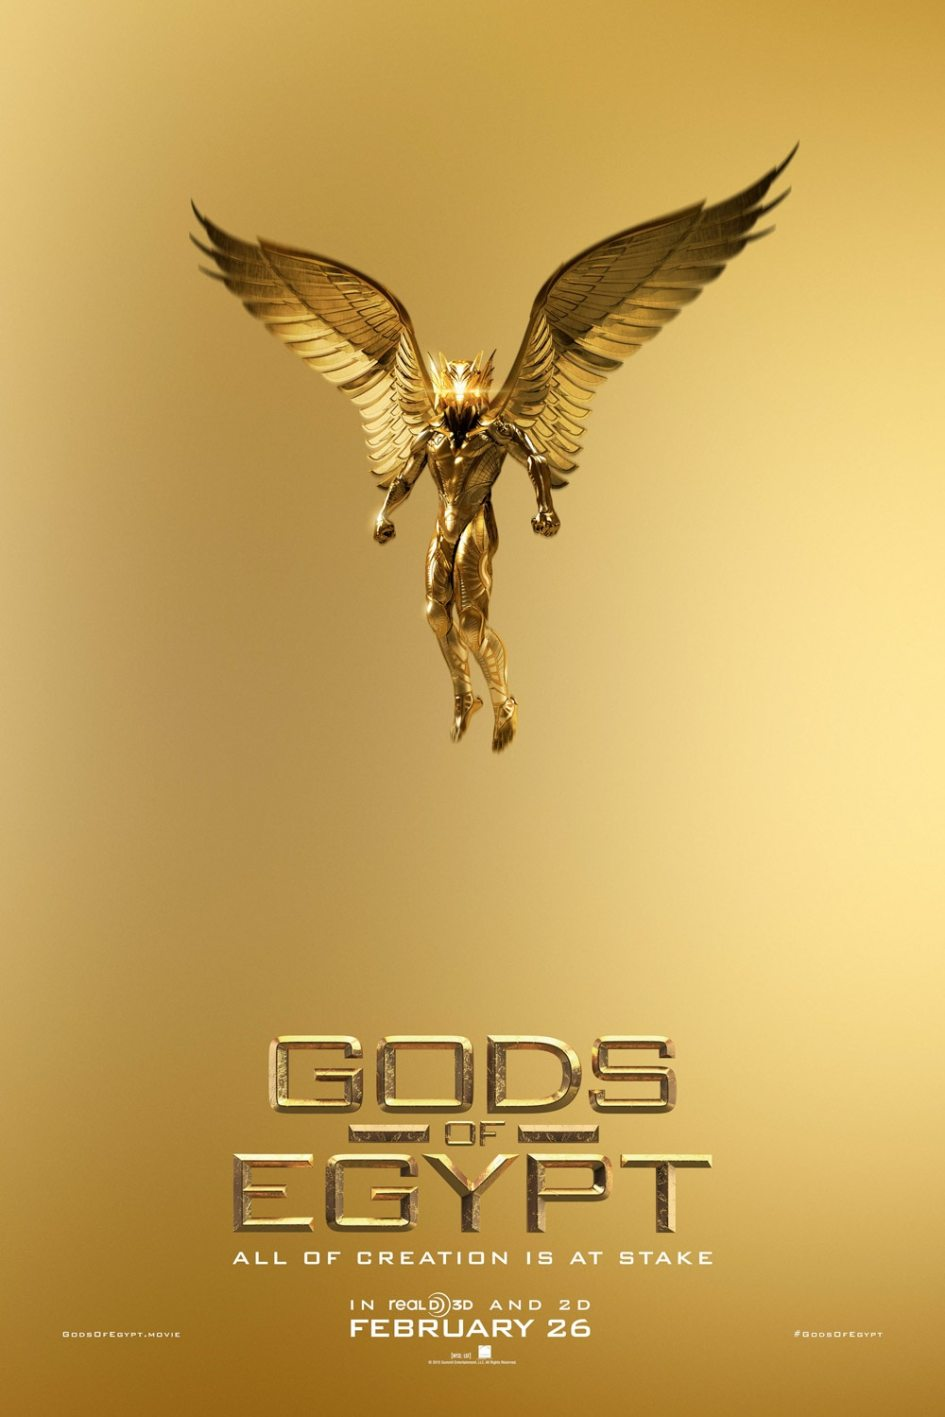 gods of egypt poster 2.jpg?zoom=1 - Lionsgate and Alex Proyas Respond to Backlash Against Mostly White Cast in Gods of Egypt